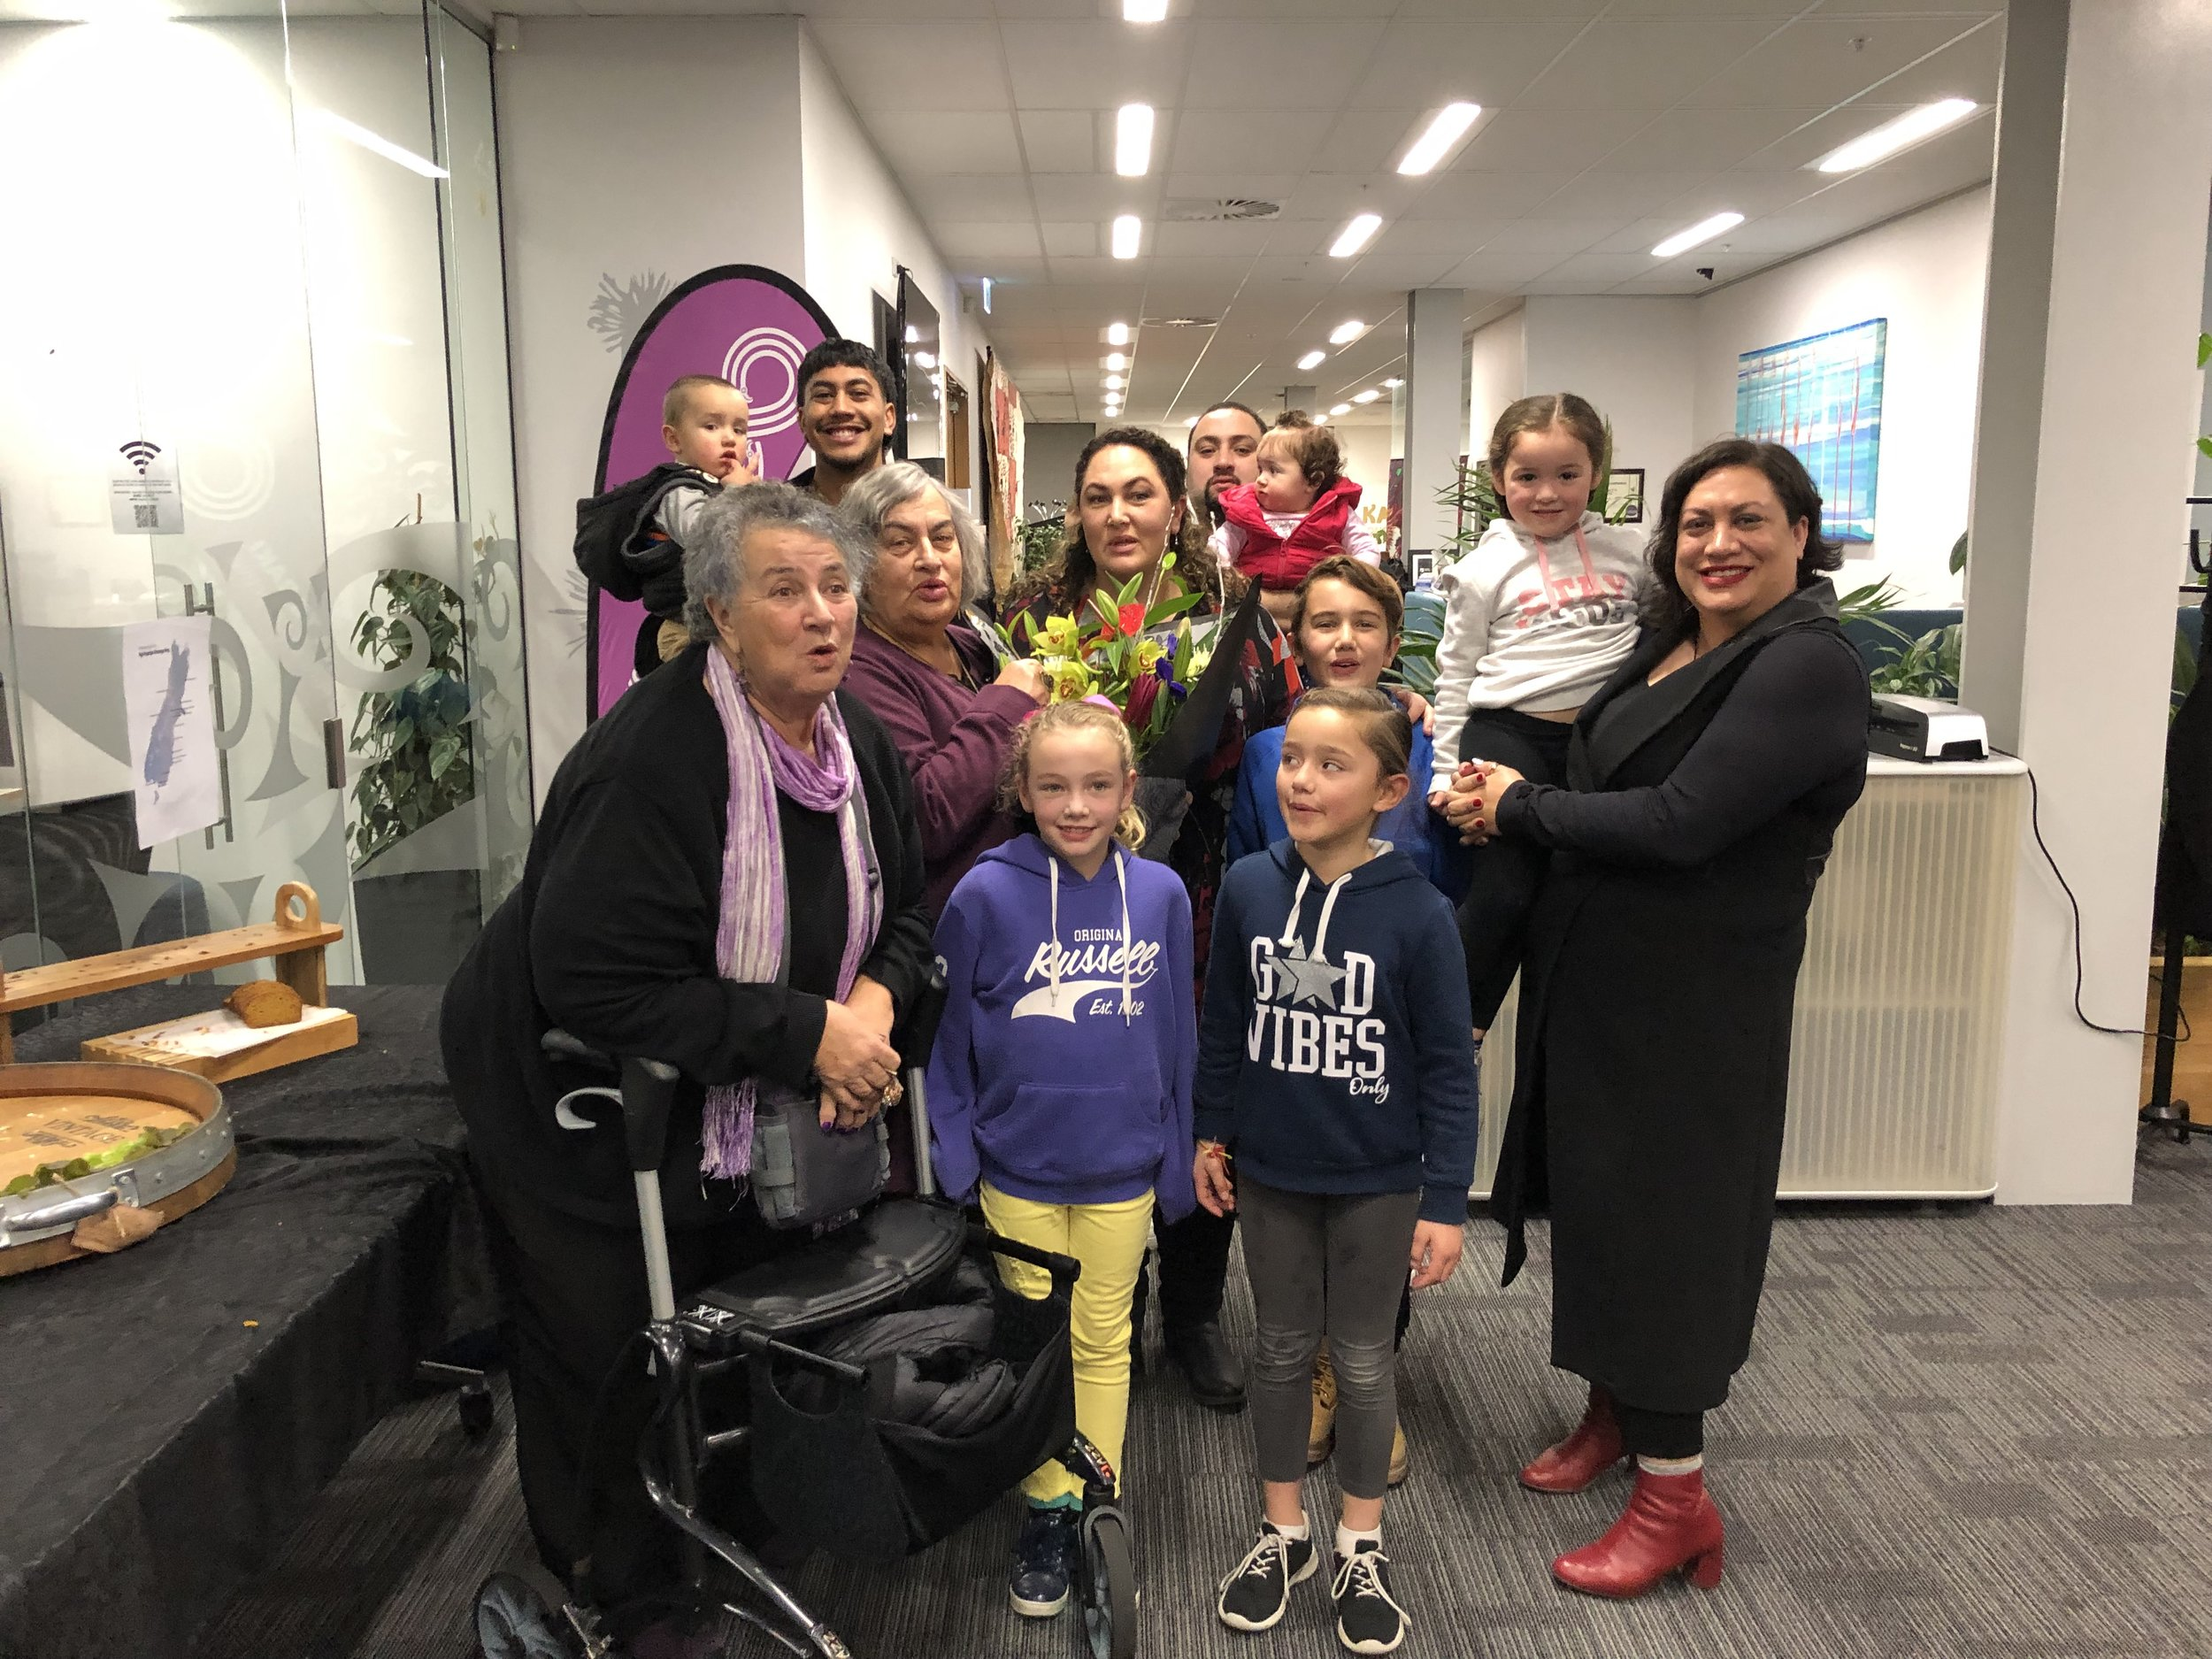 Maania with her Mum and aunty Maria, sister, brother, nieces and nephews and son.